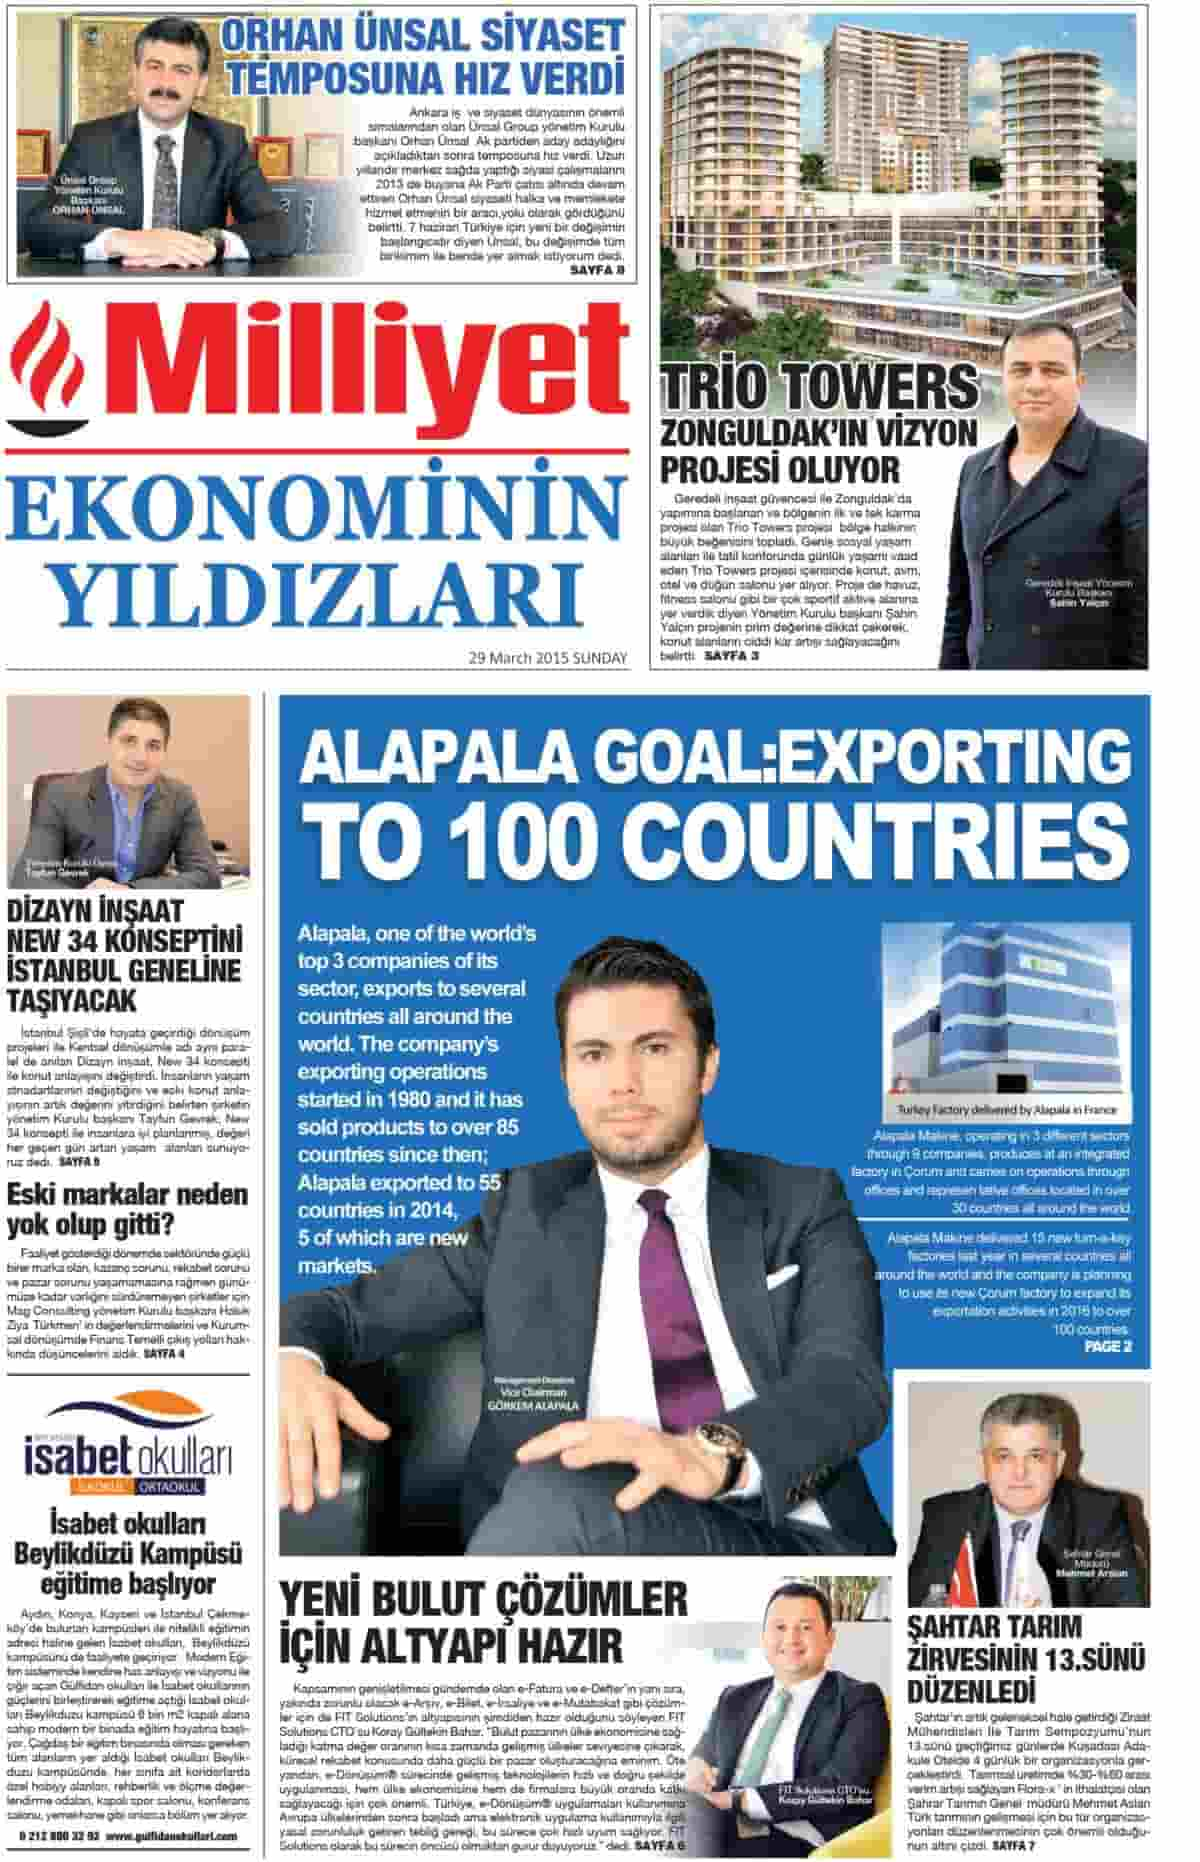 ALAPALA'S GOAL: EXPORTING TO 100 COUNTRIES